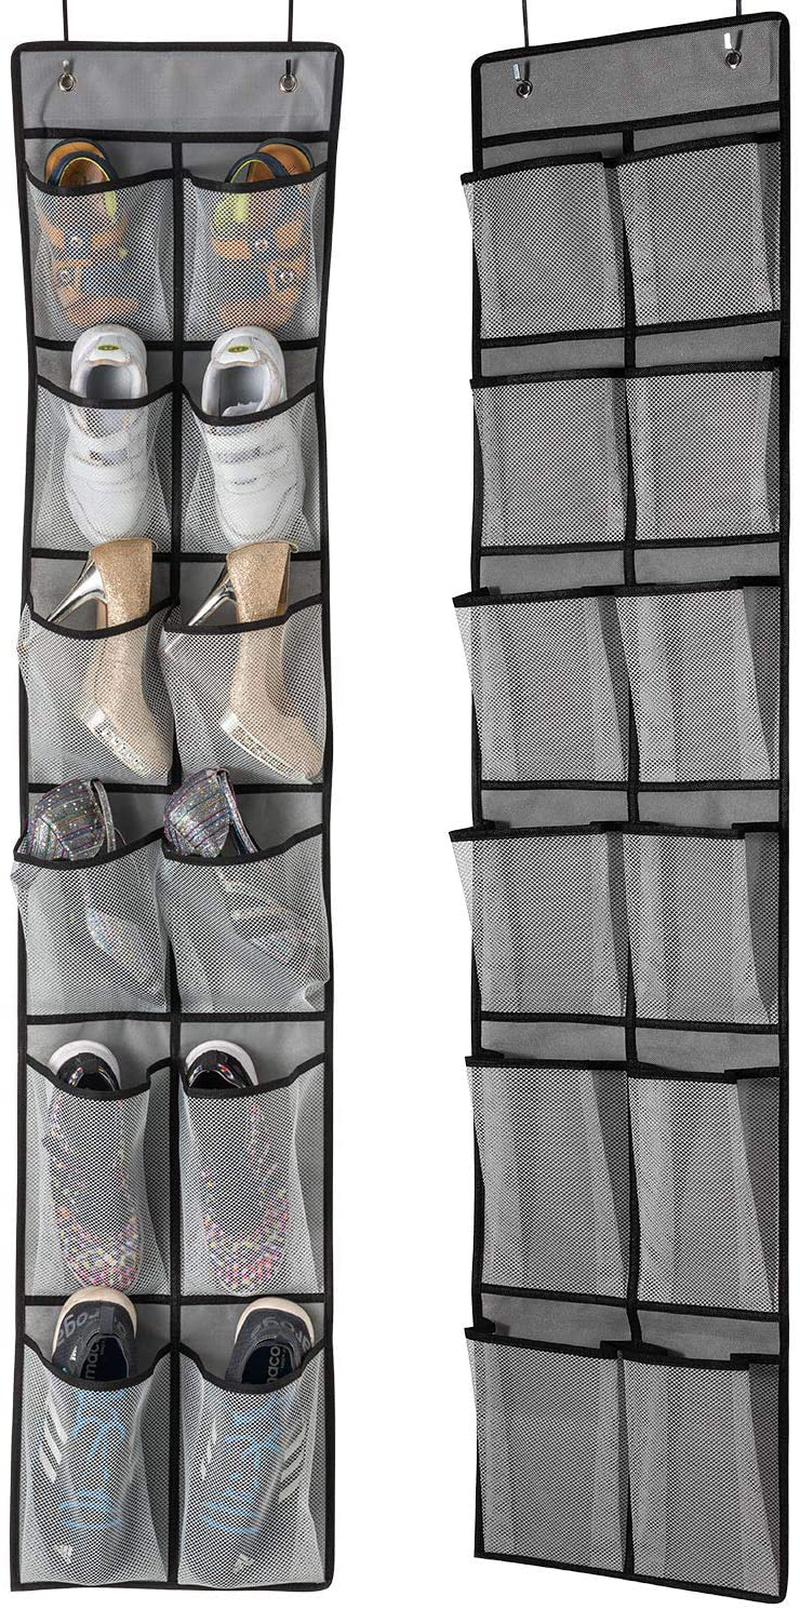 KEEPJOY Over The Door Shoe Organizer 2 Pack,Mesh Pockets Hanging Shoe Rack Over The Door,Shoe Storage Closet with 4 Hooks,Washable and Breathable Fabic,Large Size 57.5×12.6inch(Grey)